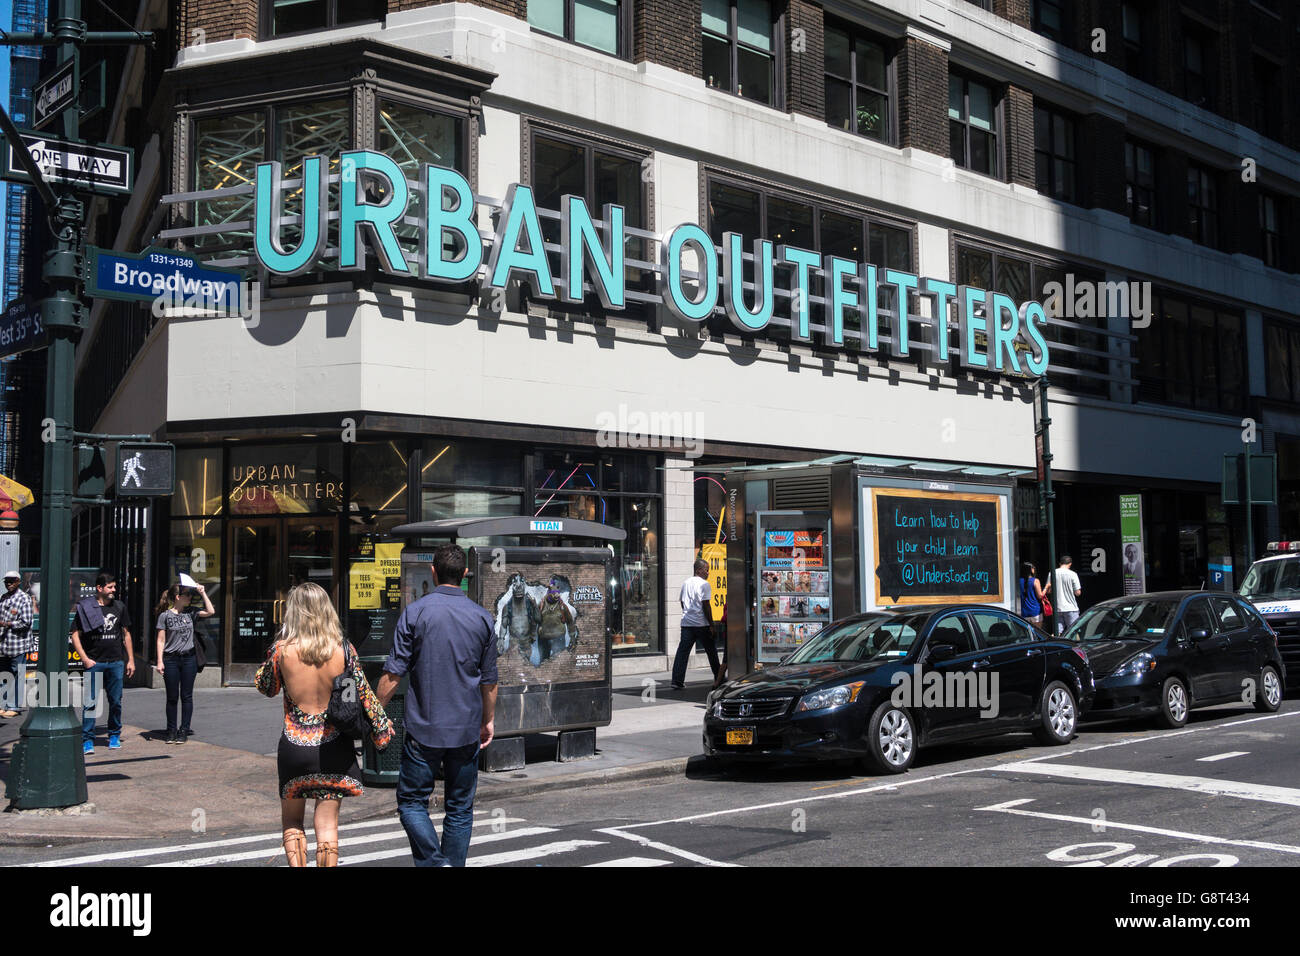 List of Urban Outfitters Outlet stores – locations by state